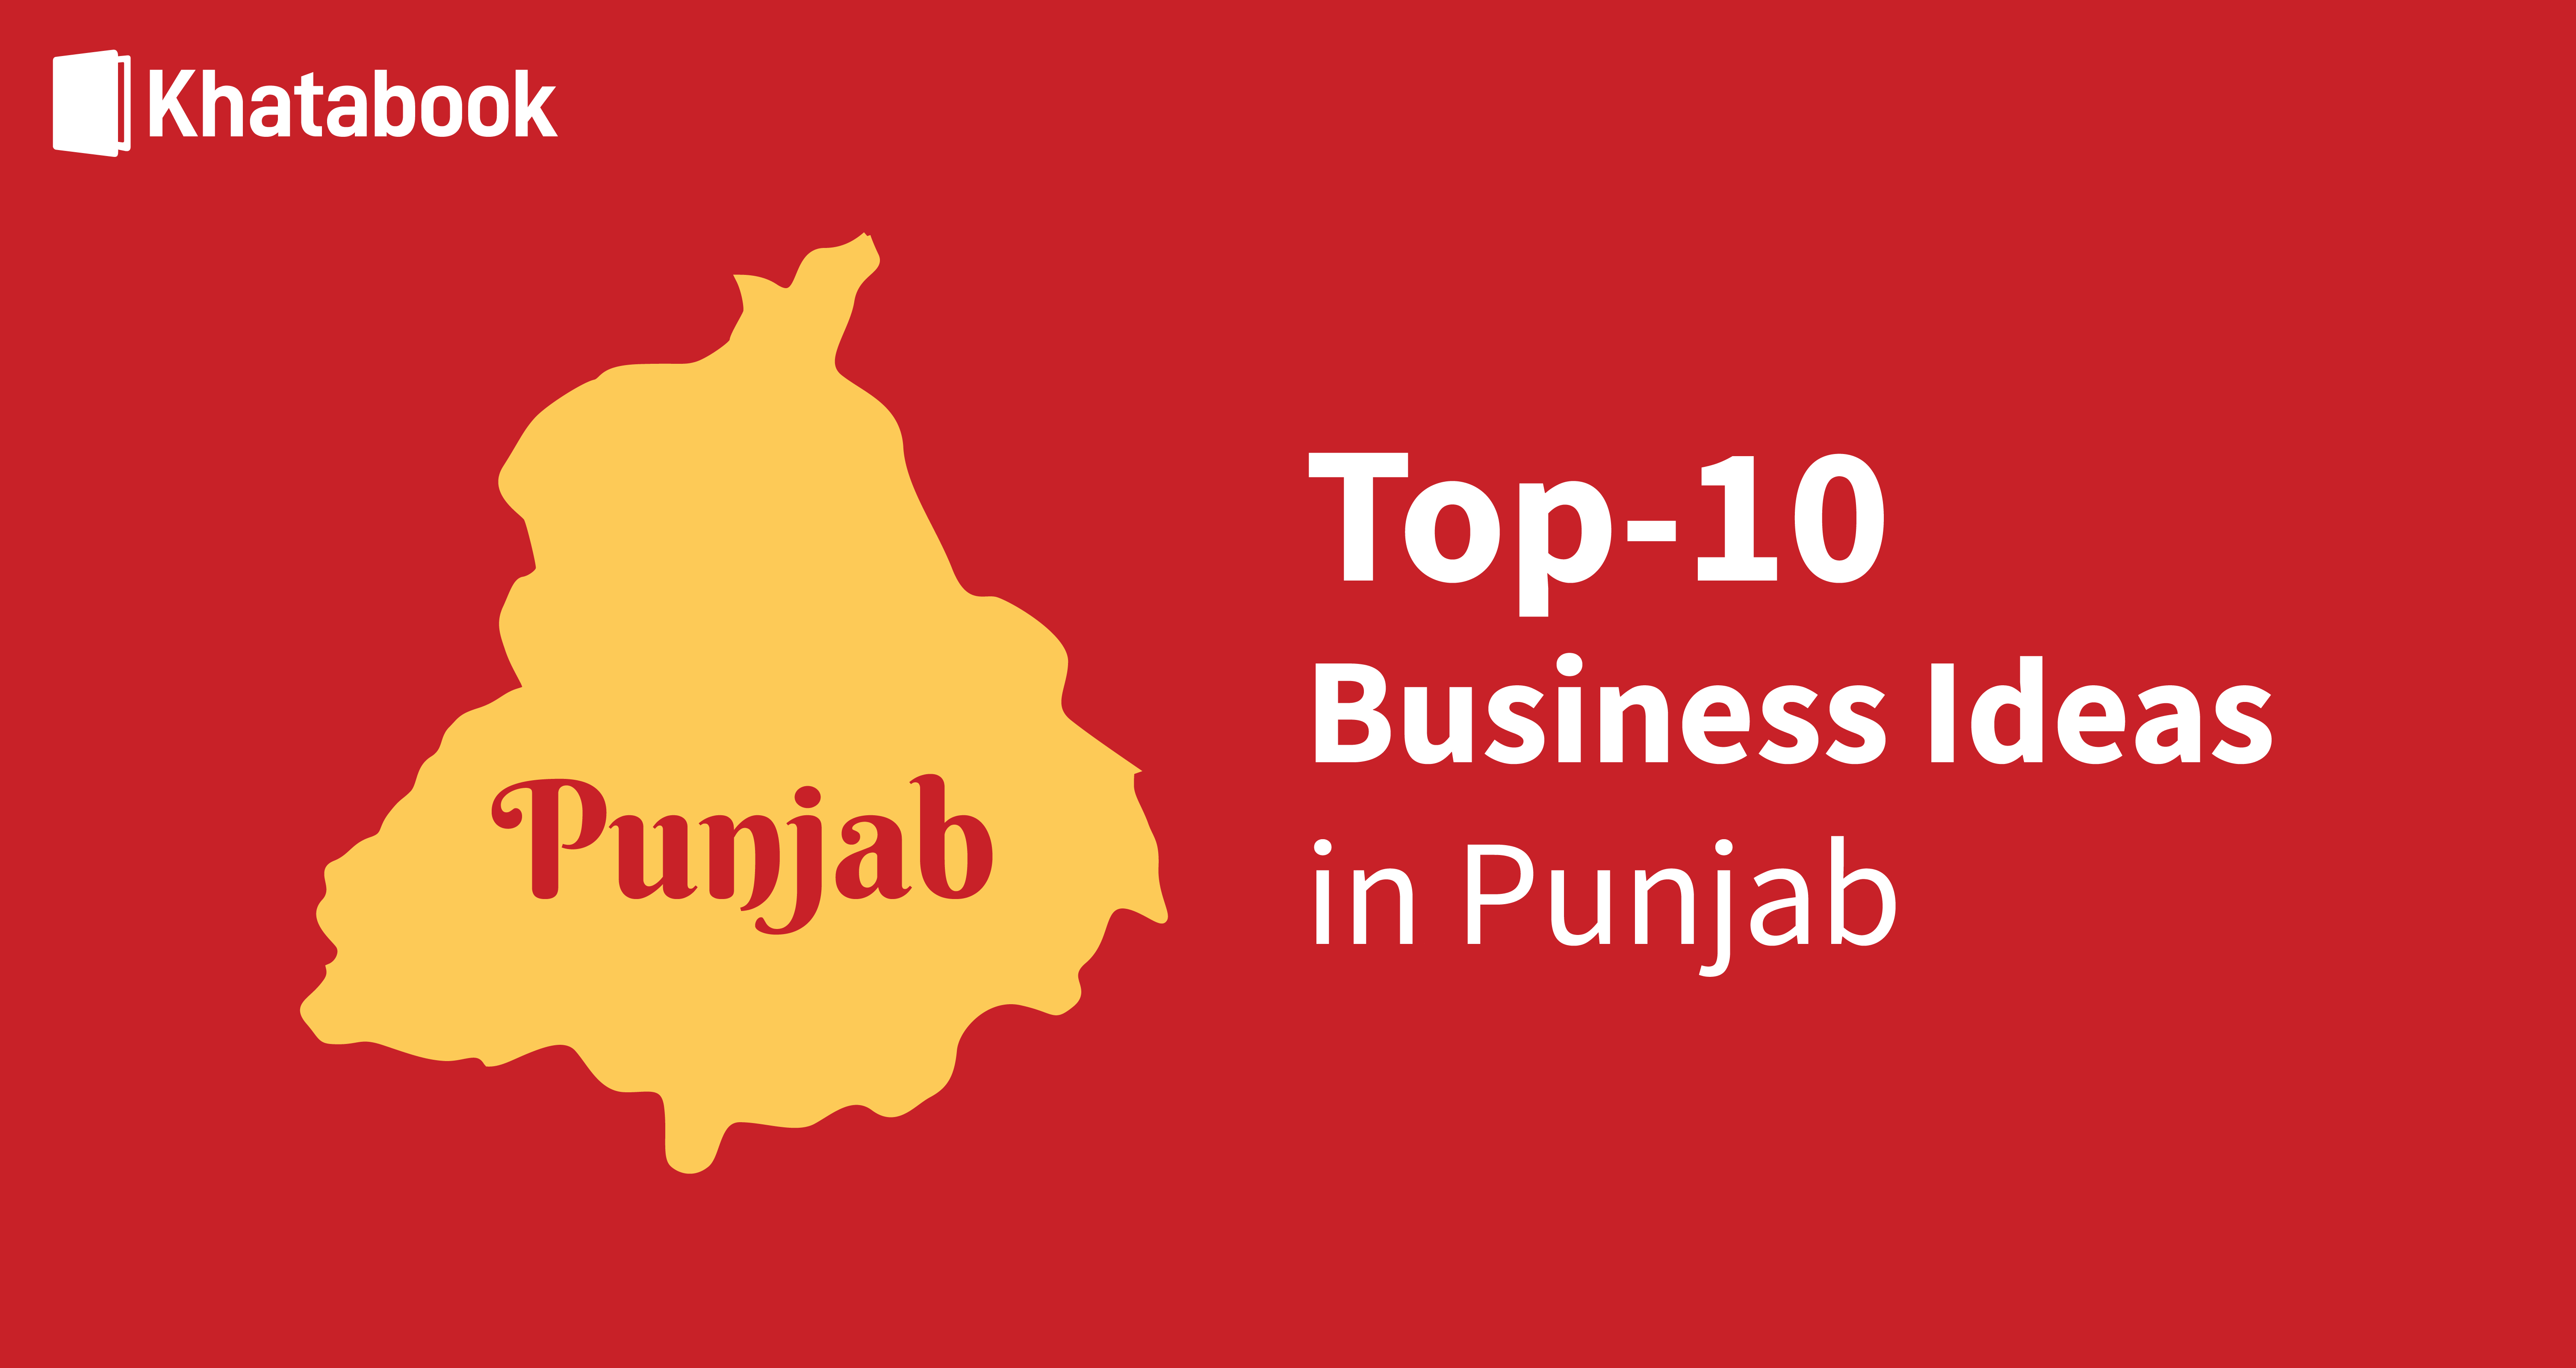 Know the Best Business Ideas in Punjab